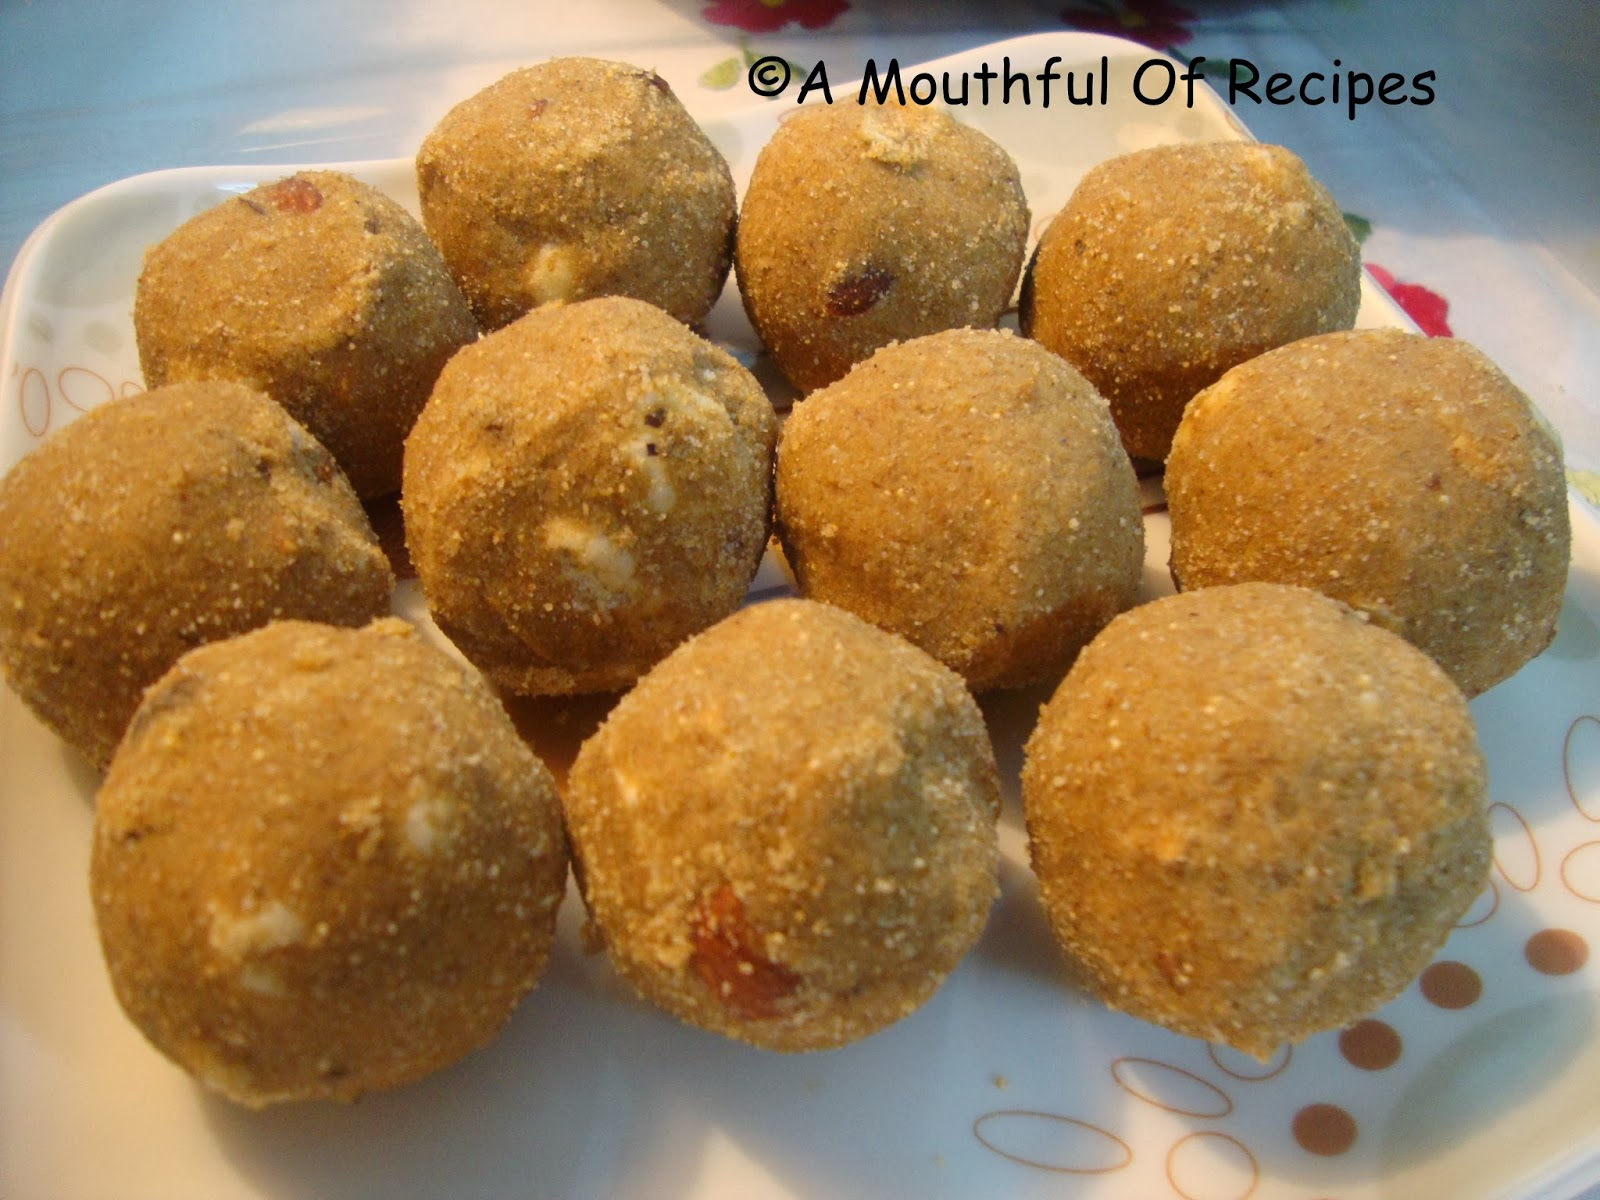 A mouthful of recipes panjiri ladoo gound ladoo diwali n panjiri ladoo gound ladoo diwali n winters special forumfinder Choice Image